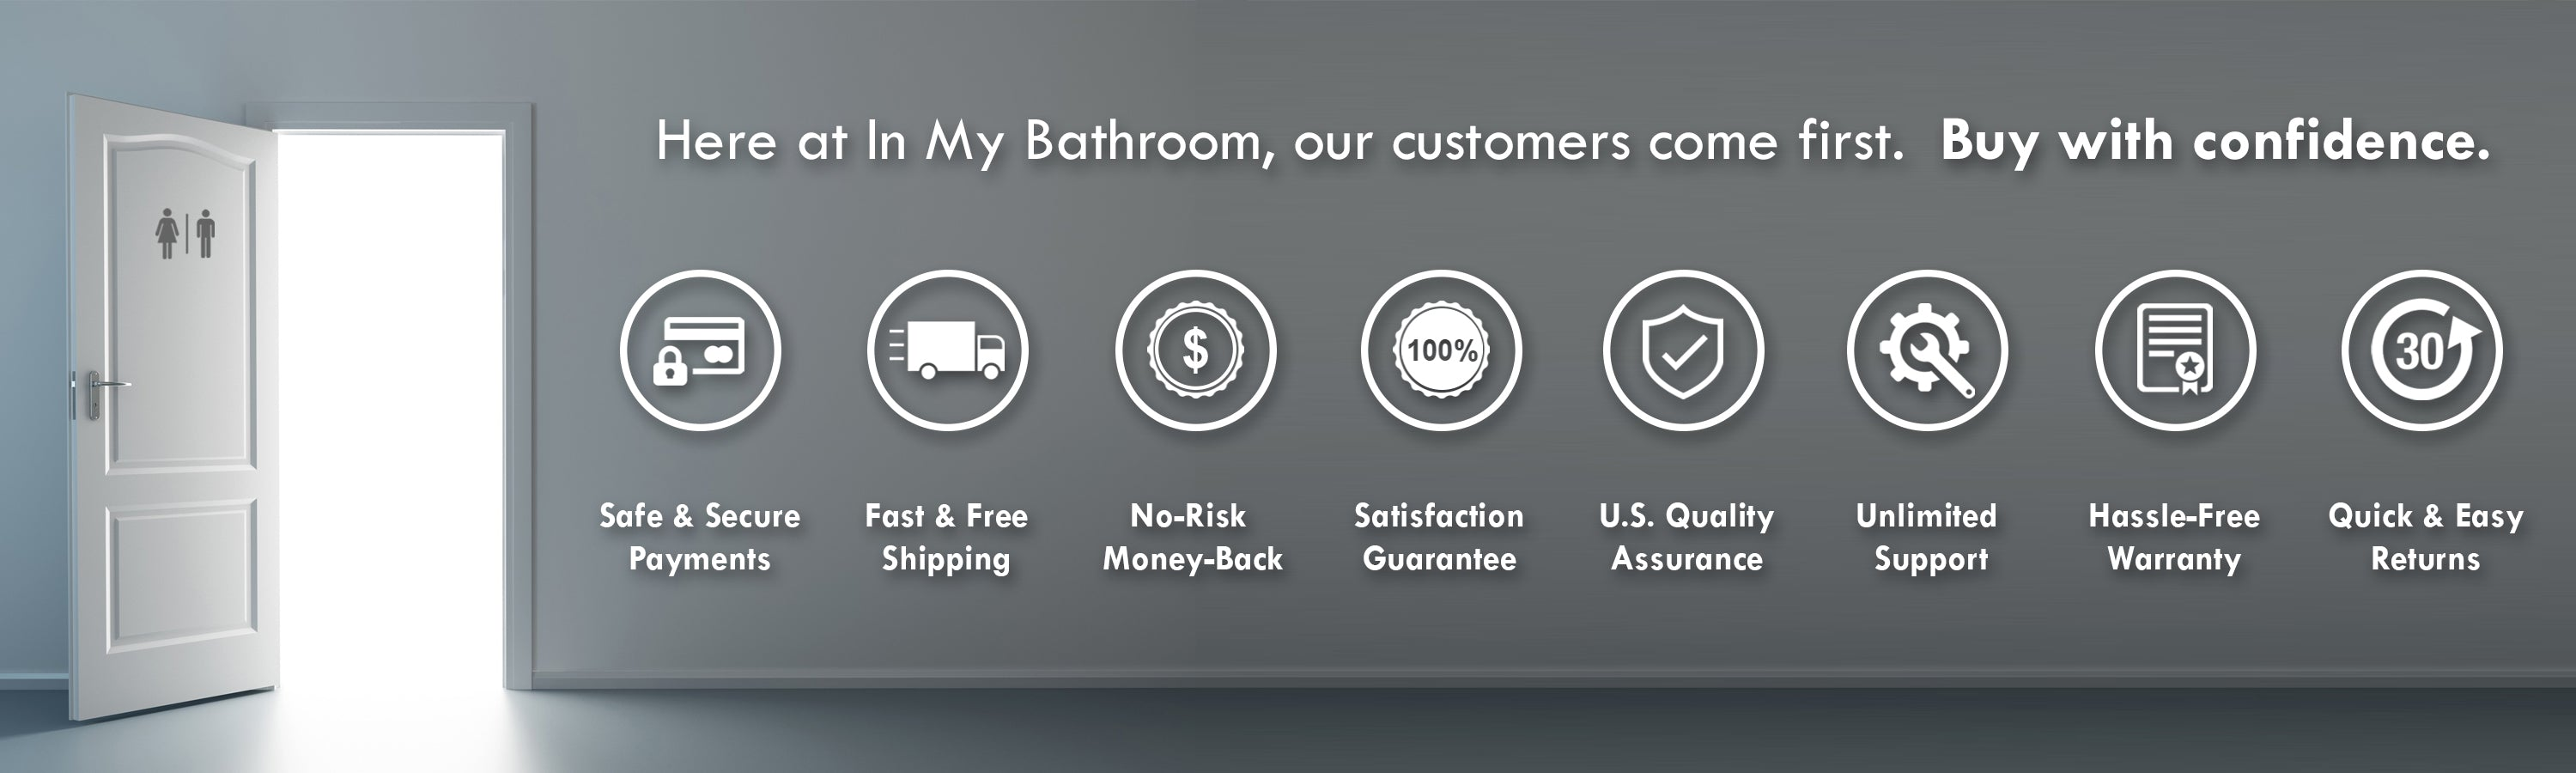 In My Bathroom (IMB) - Butt Buddy - Bidet Toilet Attachment - BBB - Customers Come First - Free Shipping - Safe Payments - Warranty - Money-Back - Satisfaction Guaranteed - U.S. - USA - Support - QA - Easy Returns - Buy With Confidence